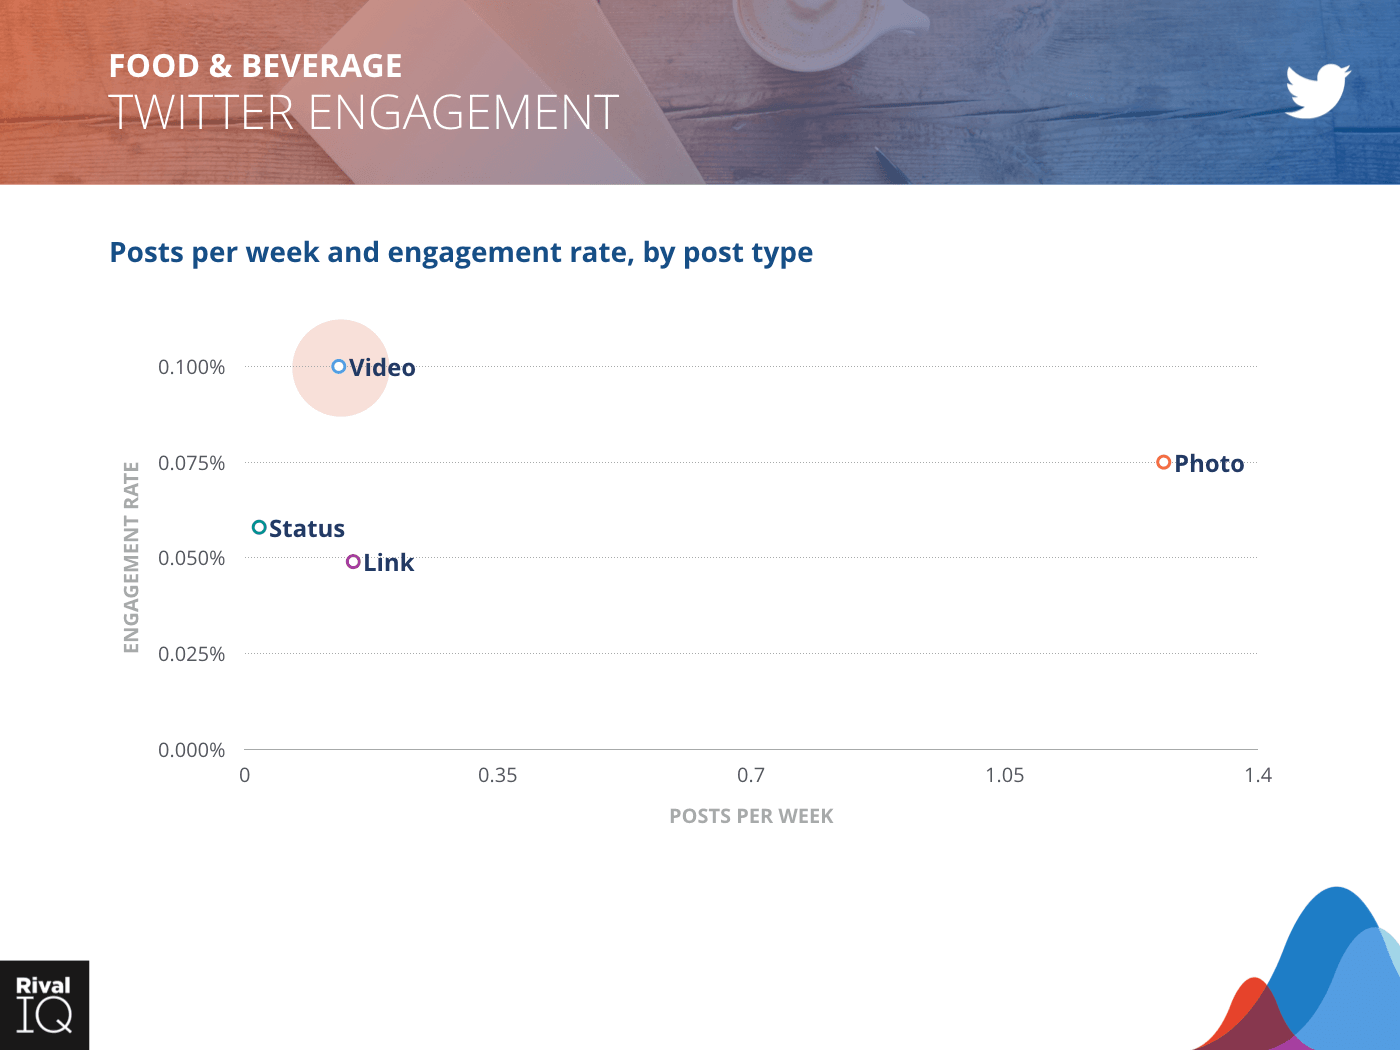 Food & Beverage Industry: scatter graph, posts per week and engagement rate on Twitter by post type